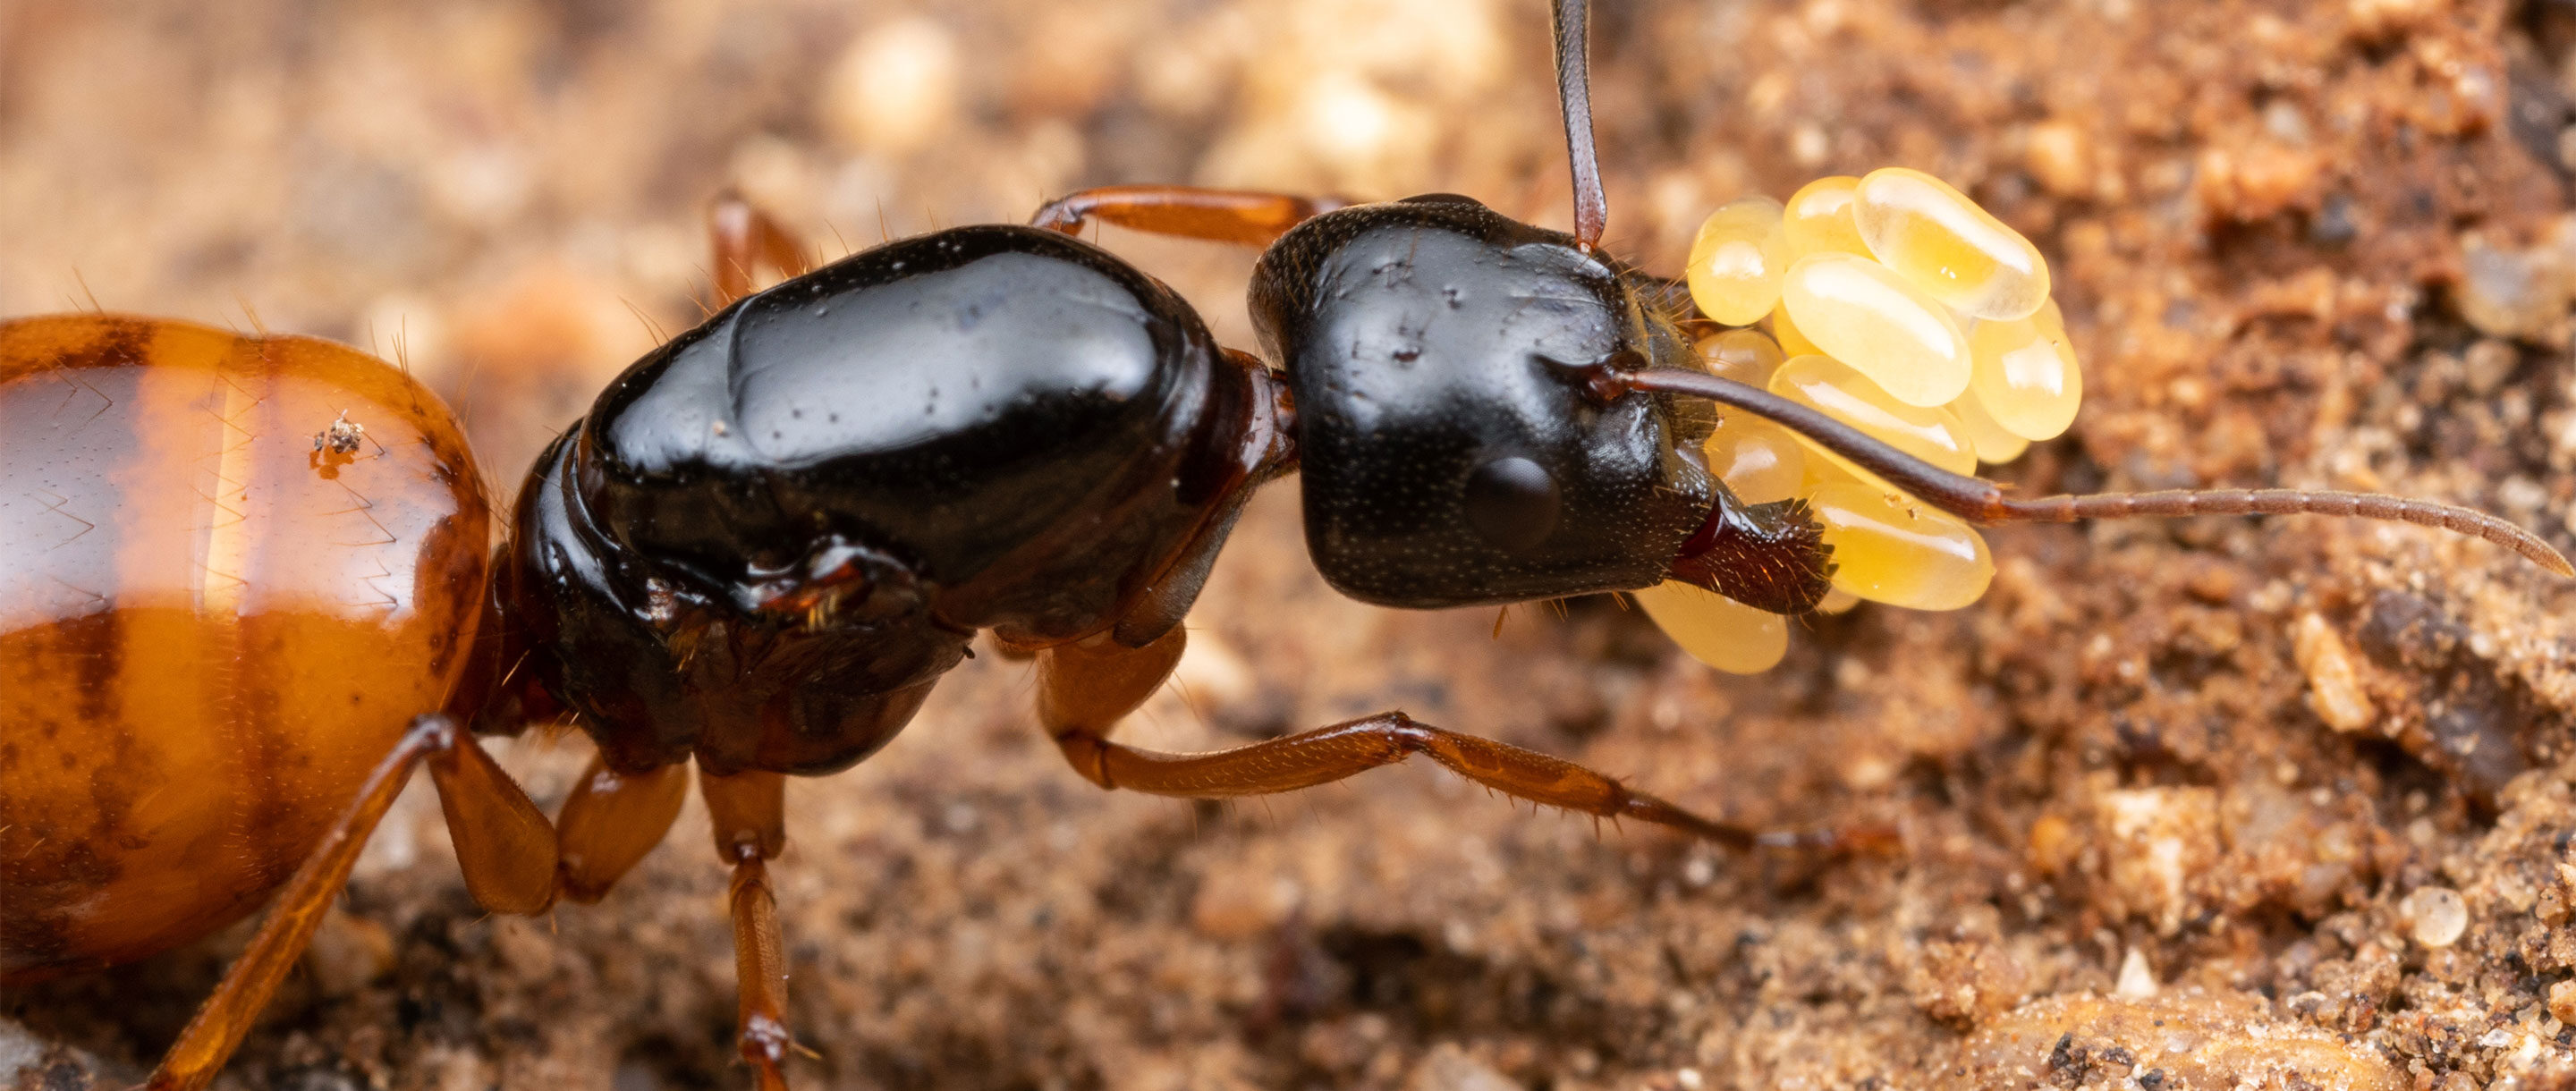 Close-up photo of a carpenter ant queen carrying eggs.